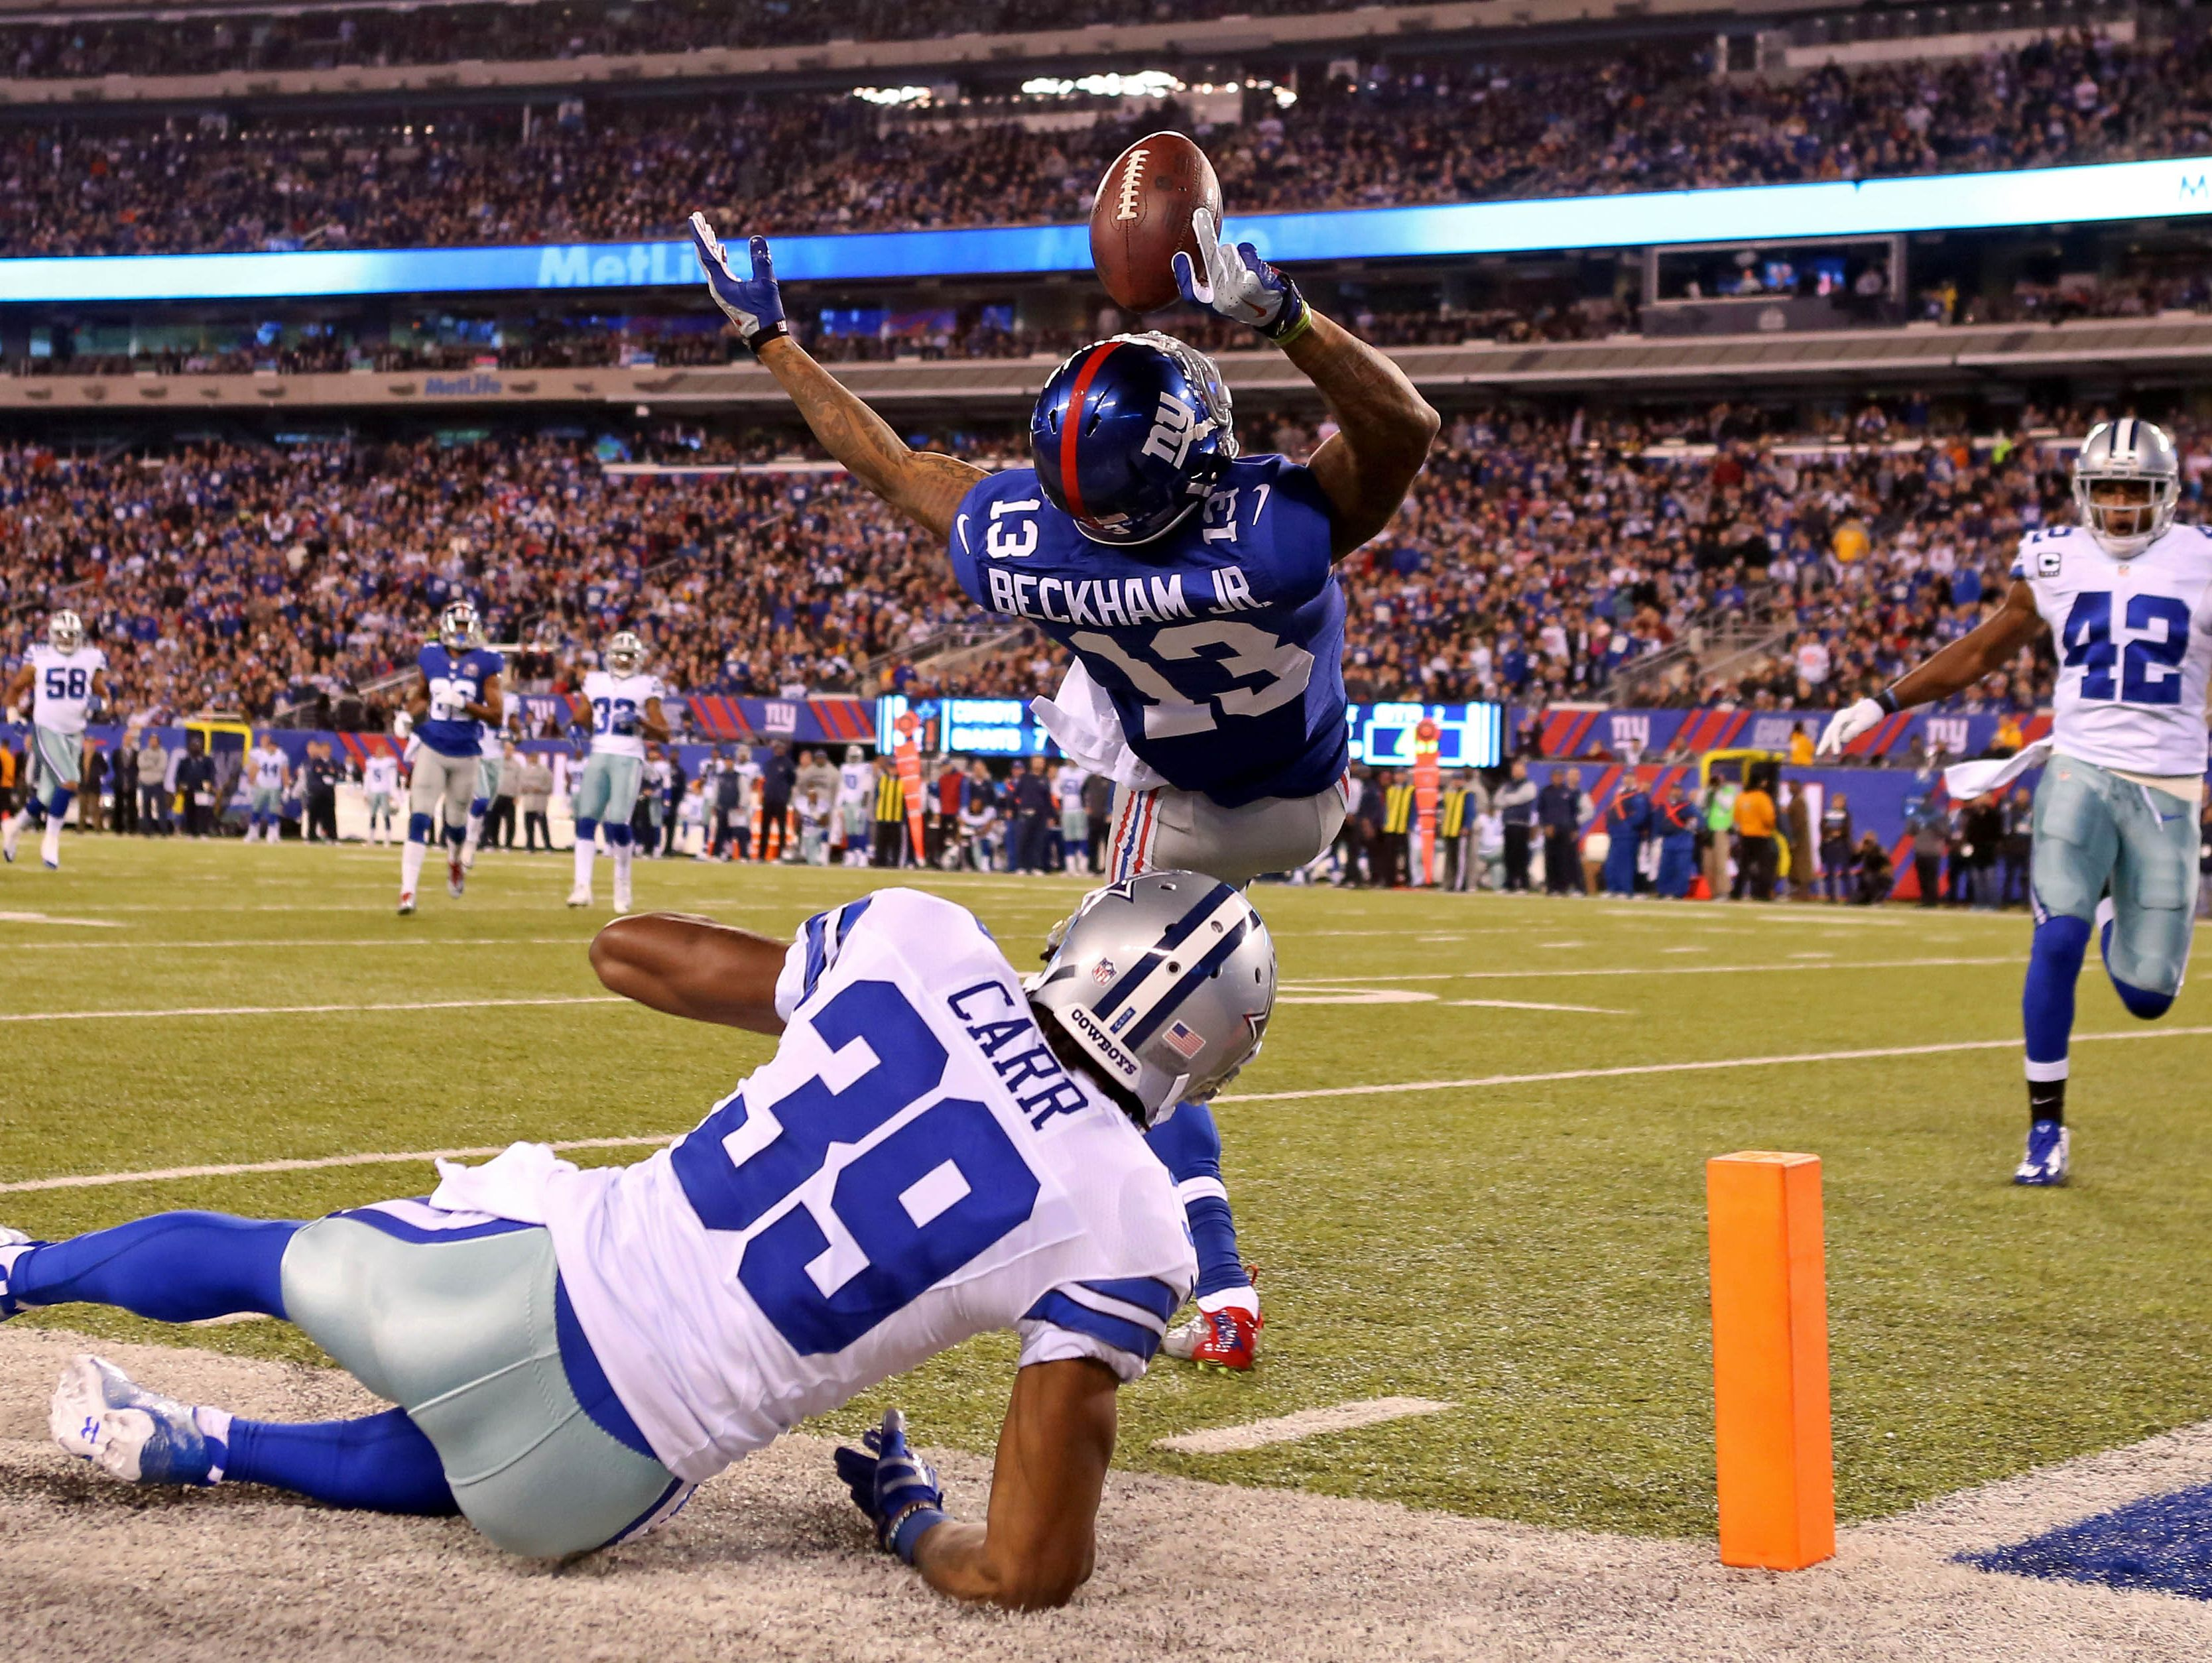 New York Giants wide receiver Odell Beckham (13) catches a touchdown pass over Dallas Cowboys cornerback Brandon Carr (39) during the second quarter at MetLife Stadium. Mandatory Credit: Adam Hunger-USA TODAY Sports